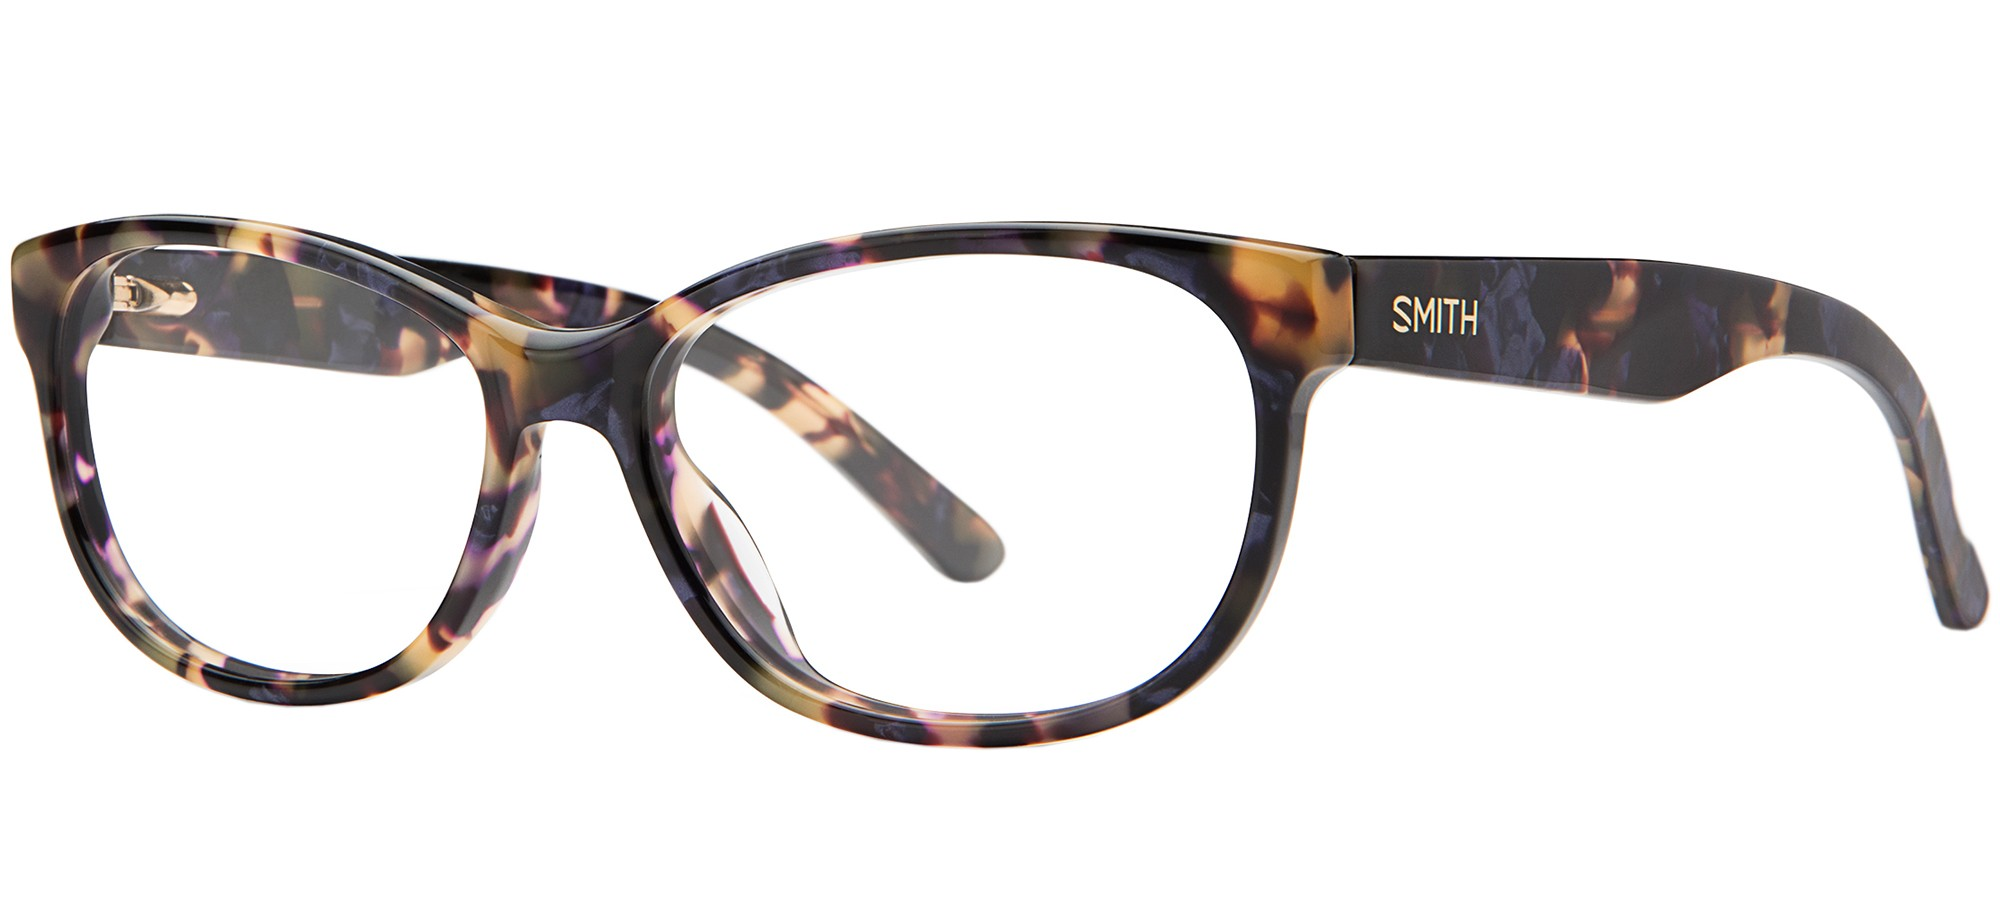 Smith Optics eyeglasses HOLGATE